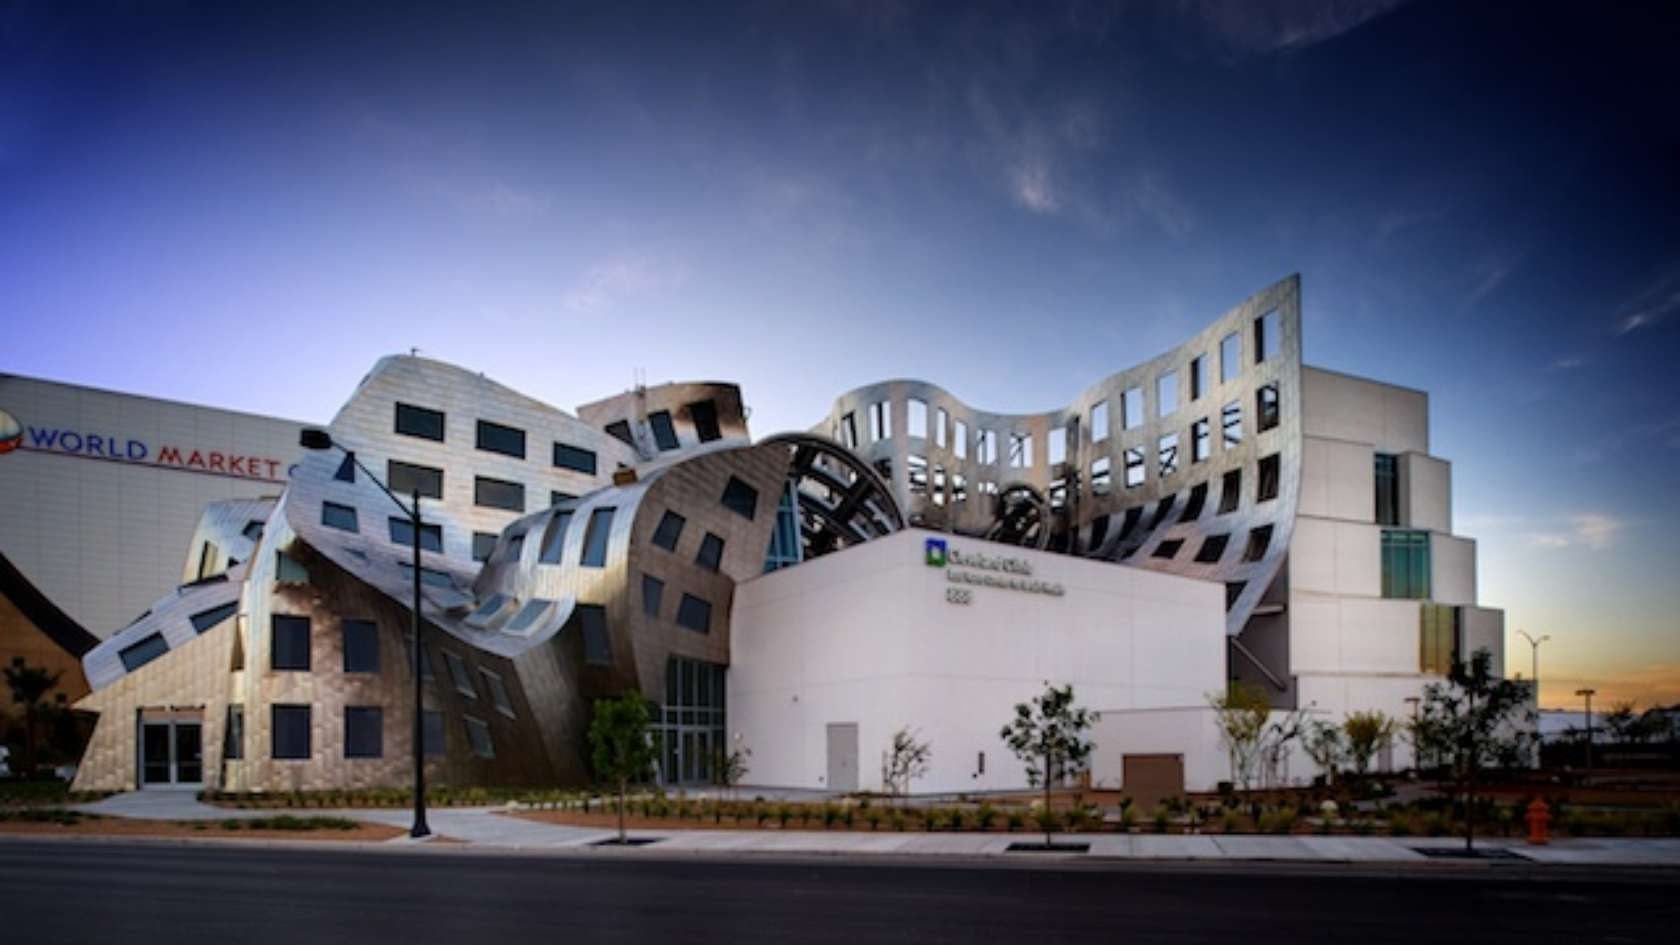 Lou ruvo center for brain health architizer for Architecture projet